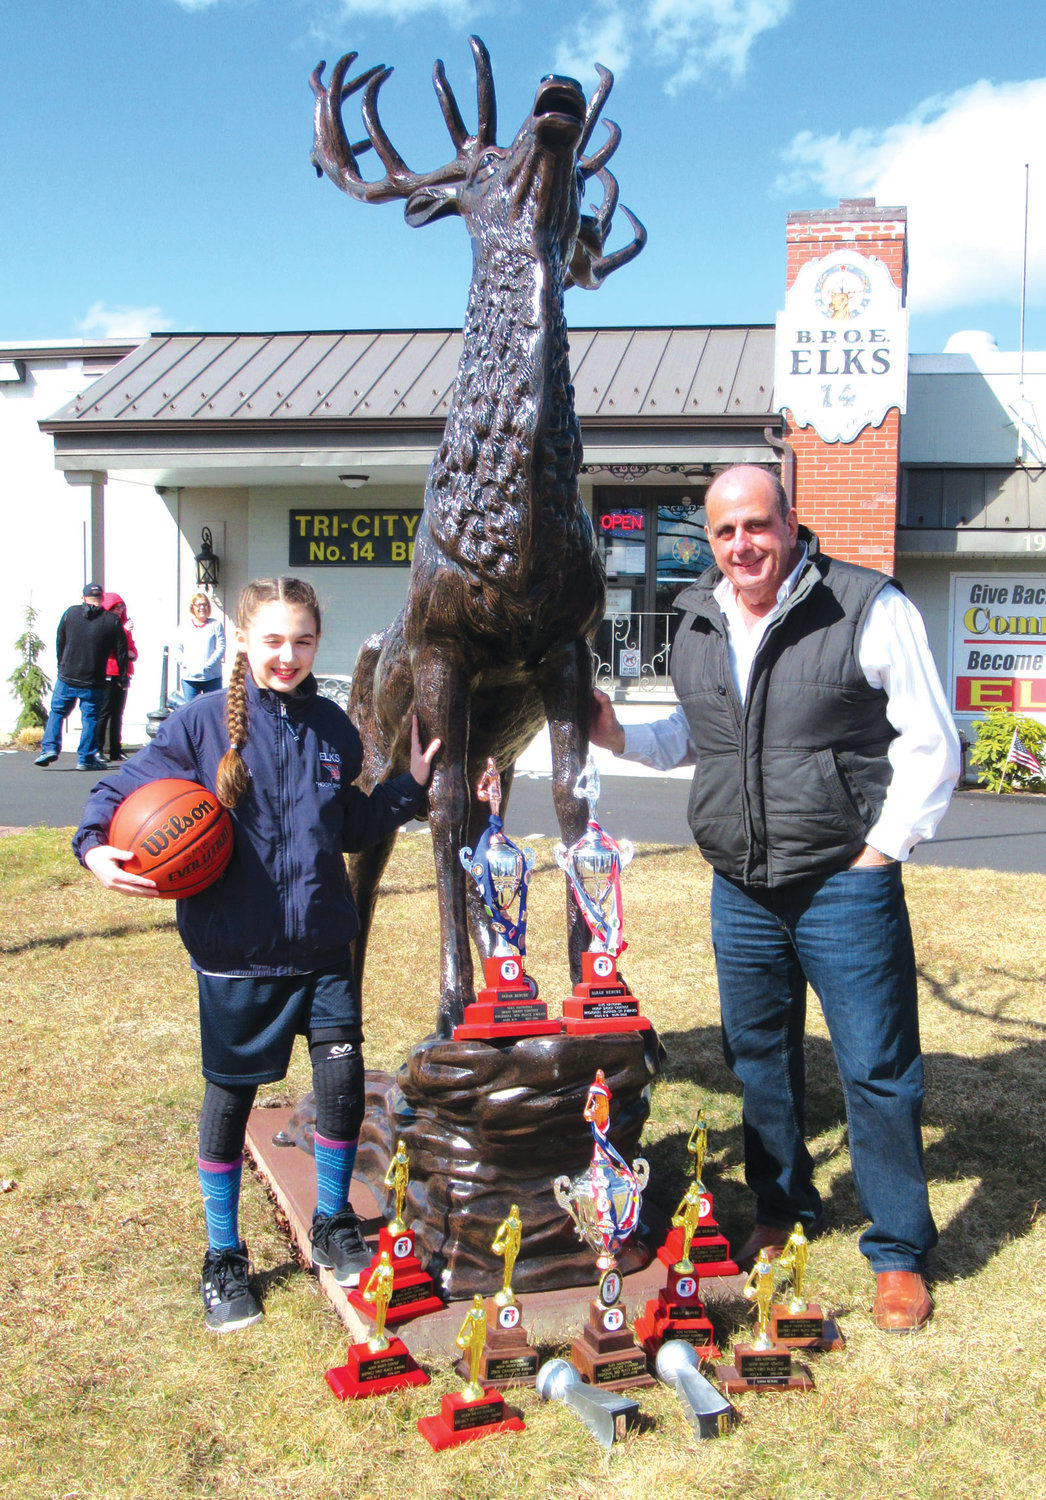 SUPER SENDOFF: Warwick Mayor Joseph J. Solomon joins Tri-City Lodge 14 Champion Sarah Berube and her parents Melissa and Norm Berube beside the new elk statue on West Shore Road for last Saturday's sendoff ceremony for the her entry in the New England championship in South Portland, Maine.